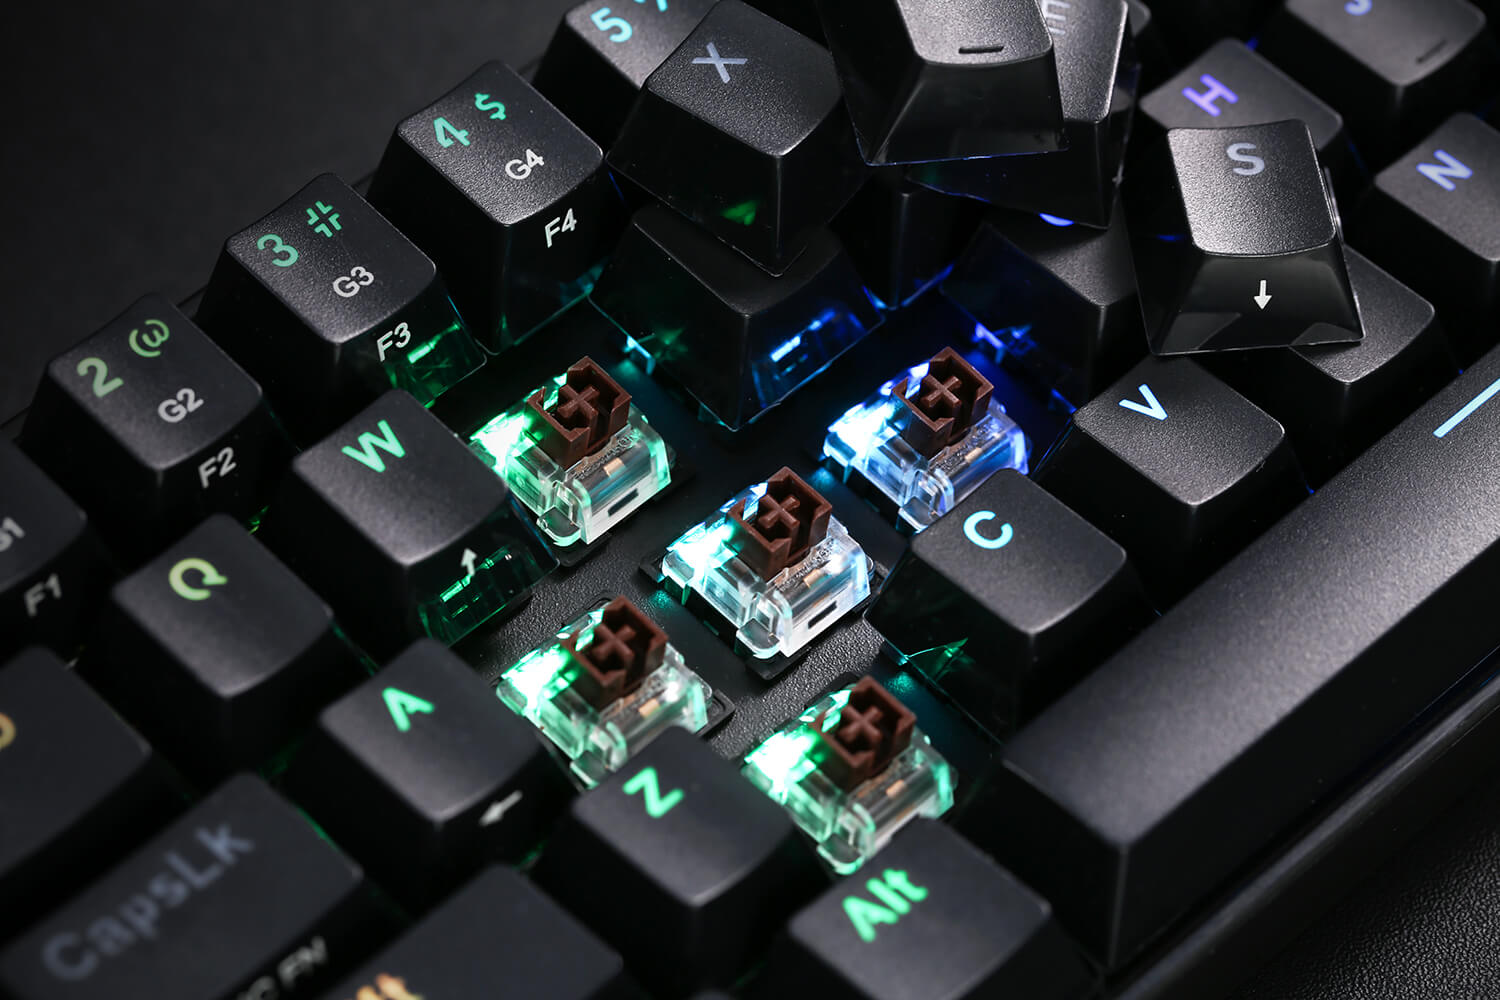 5.0 Bluetooth Gaming Keyboard with Tactile Brown Switches and 16.8 Million RGB Lighting for PC, Tablet, Cell Phone